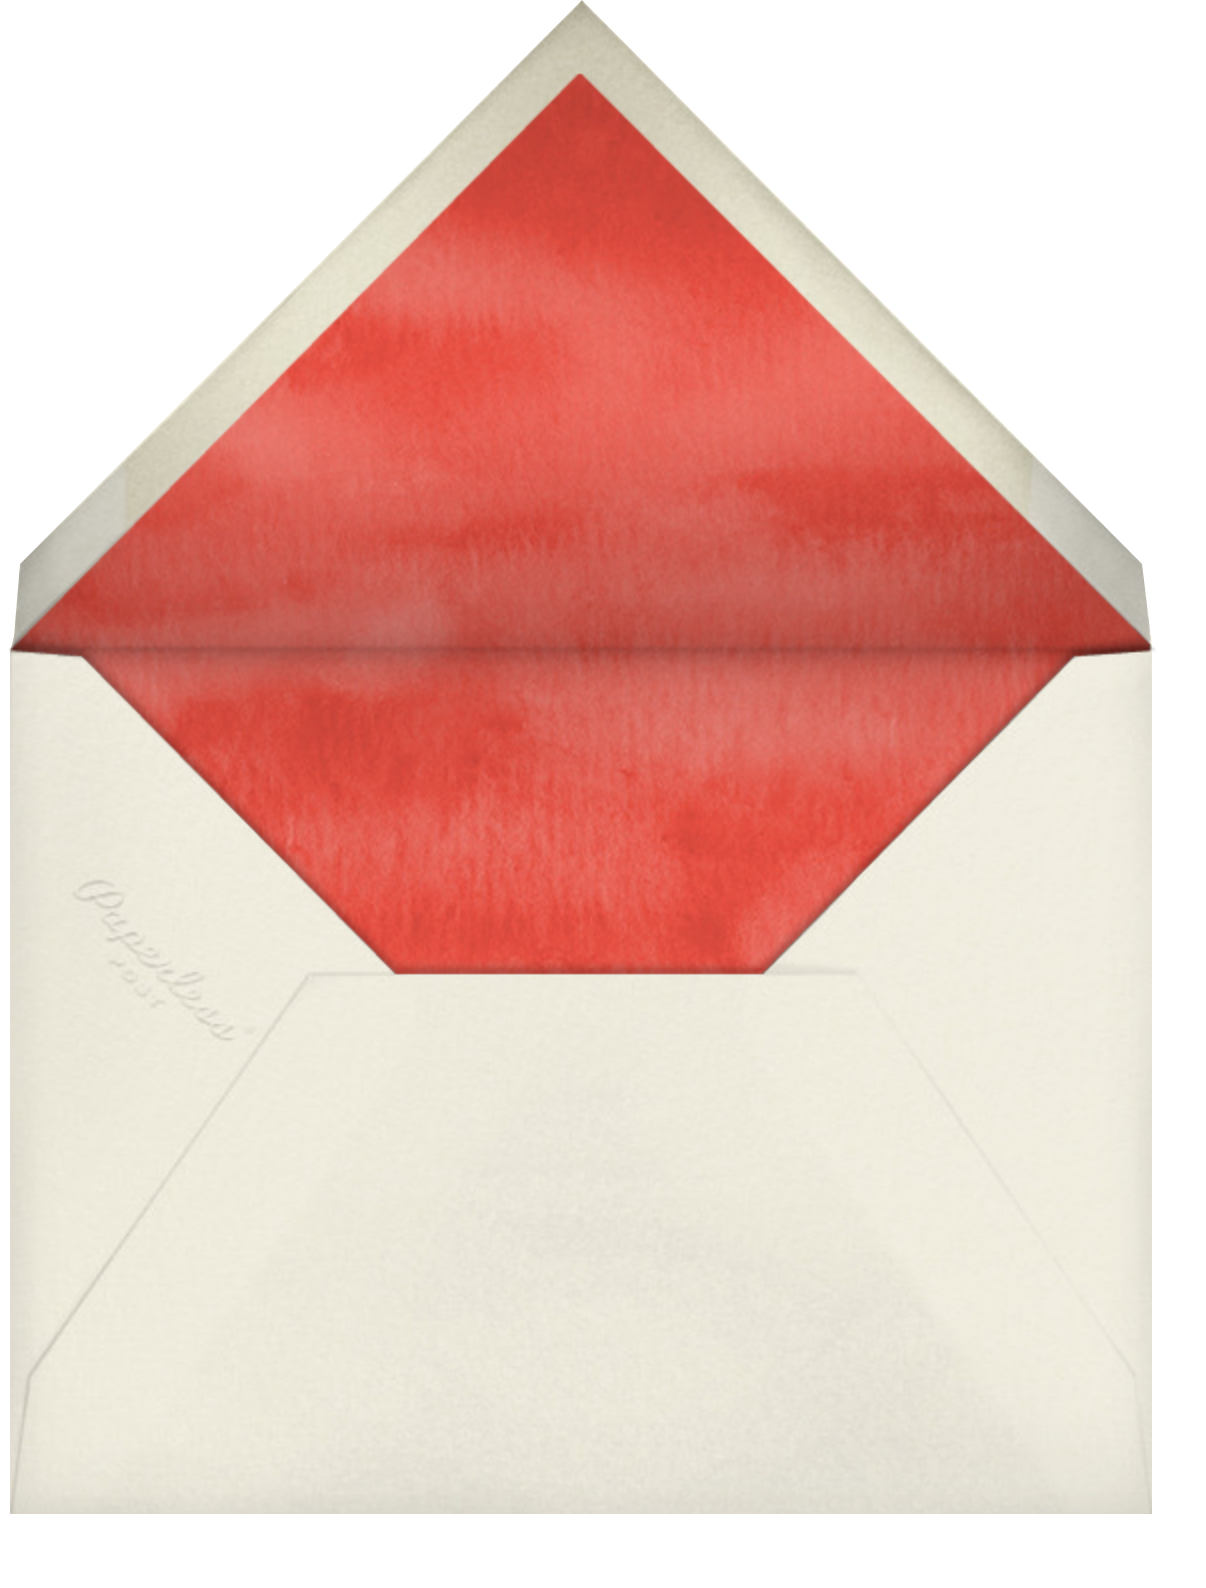 Cranberry (Save the Date) - Felix Doolittle - Save the date - envelope back